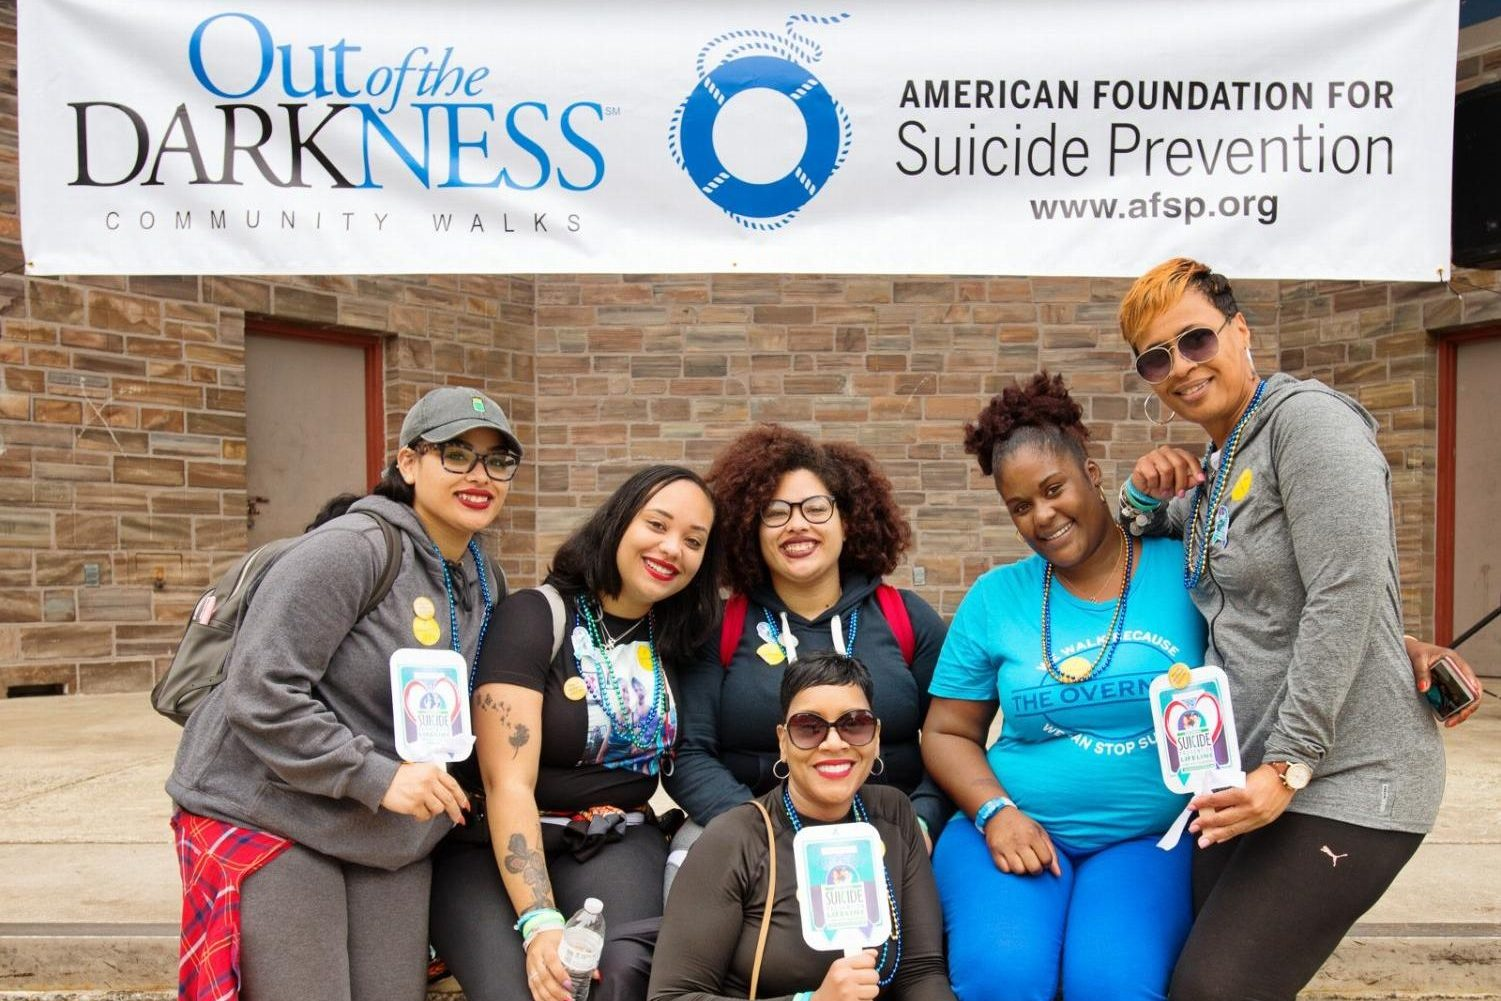 Out of the Darkness Walk 2017 participants pose in front of banner.